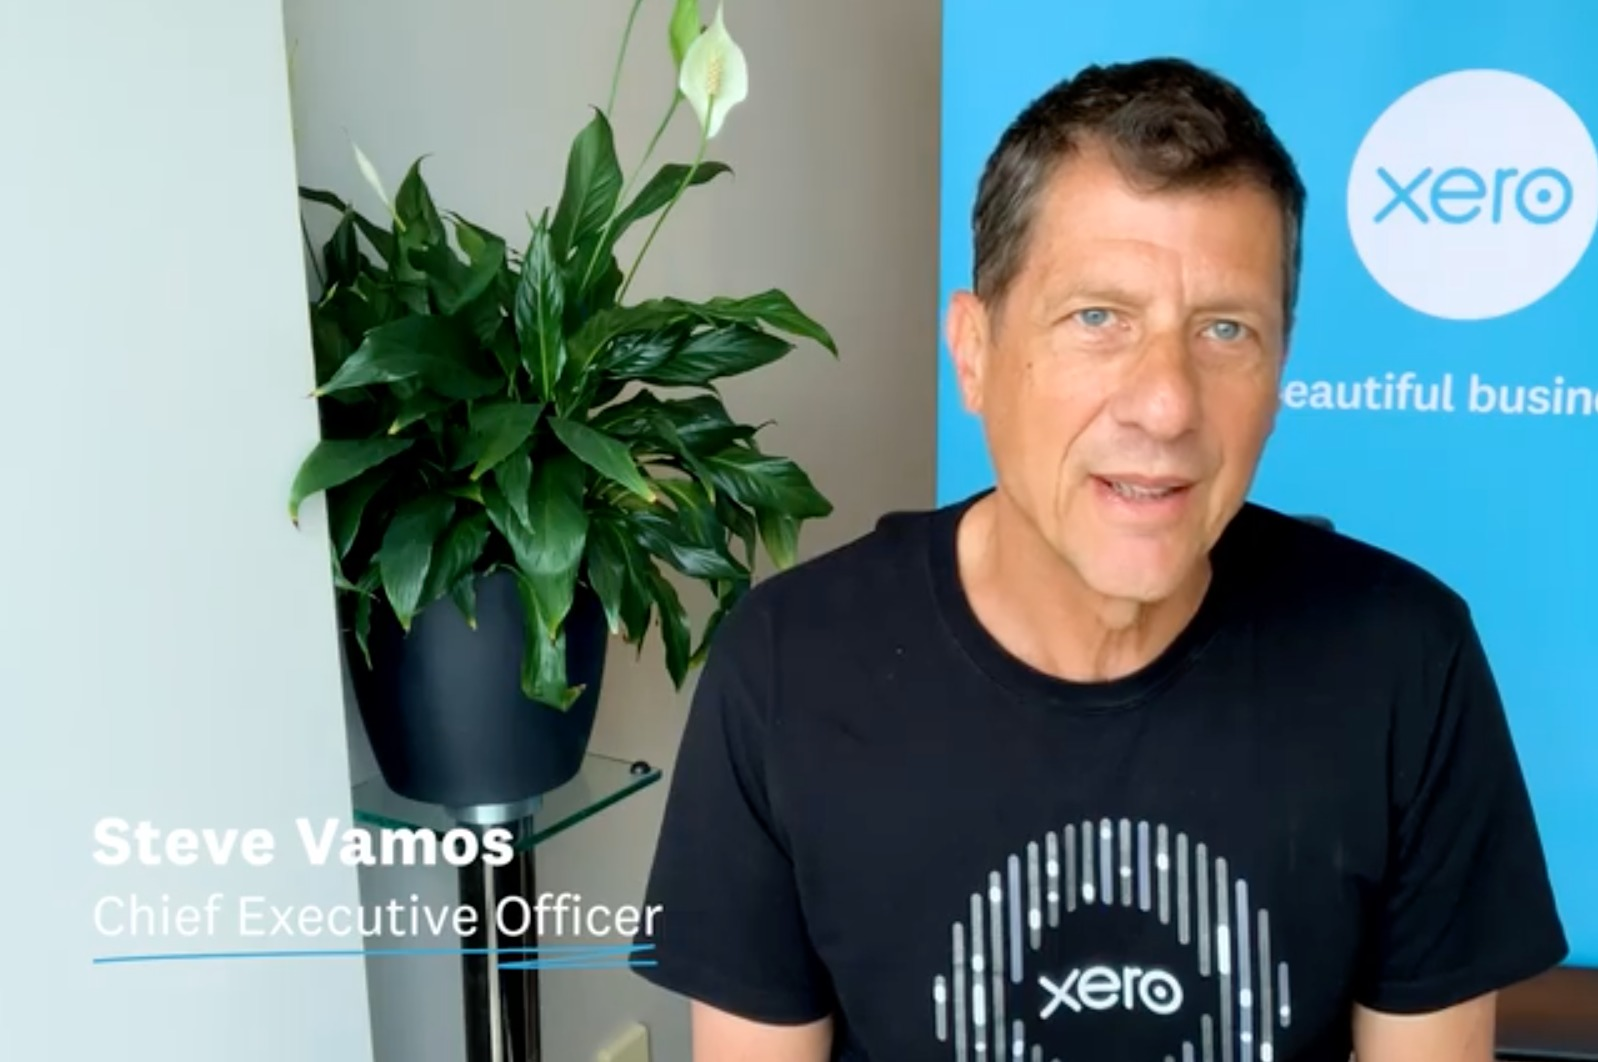 Will Waddle Wind Up Wedged into Xero? A Chat with Xero's Steve Vamos